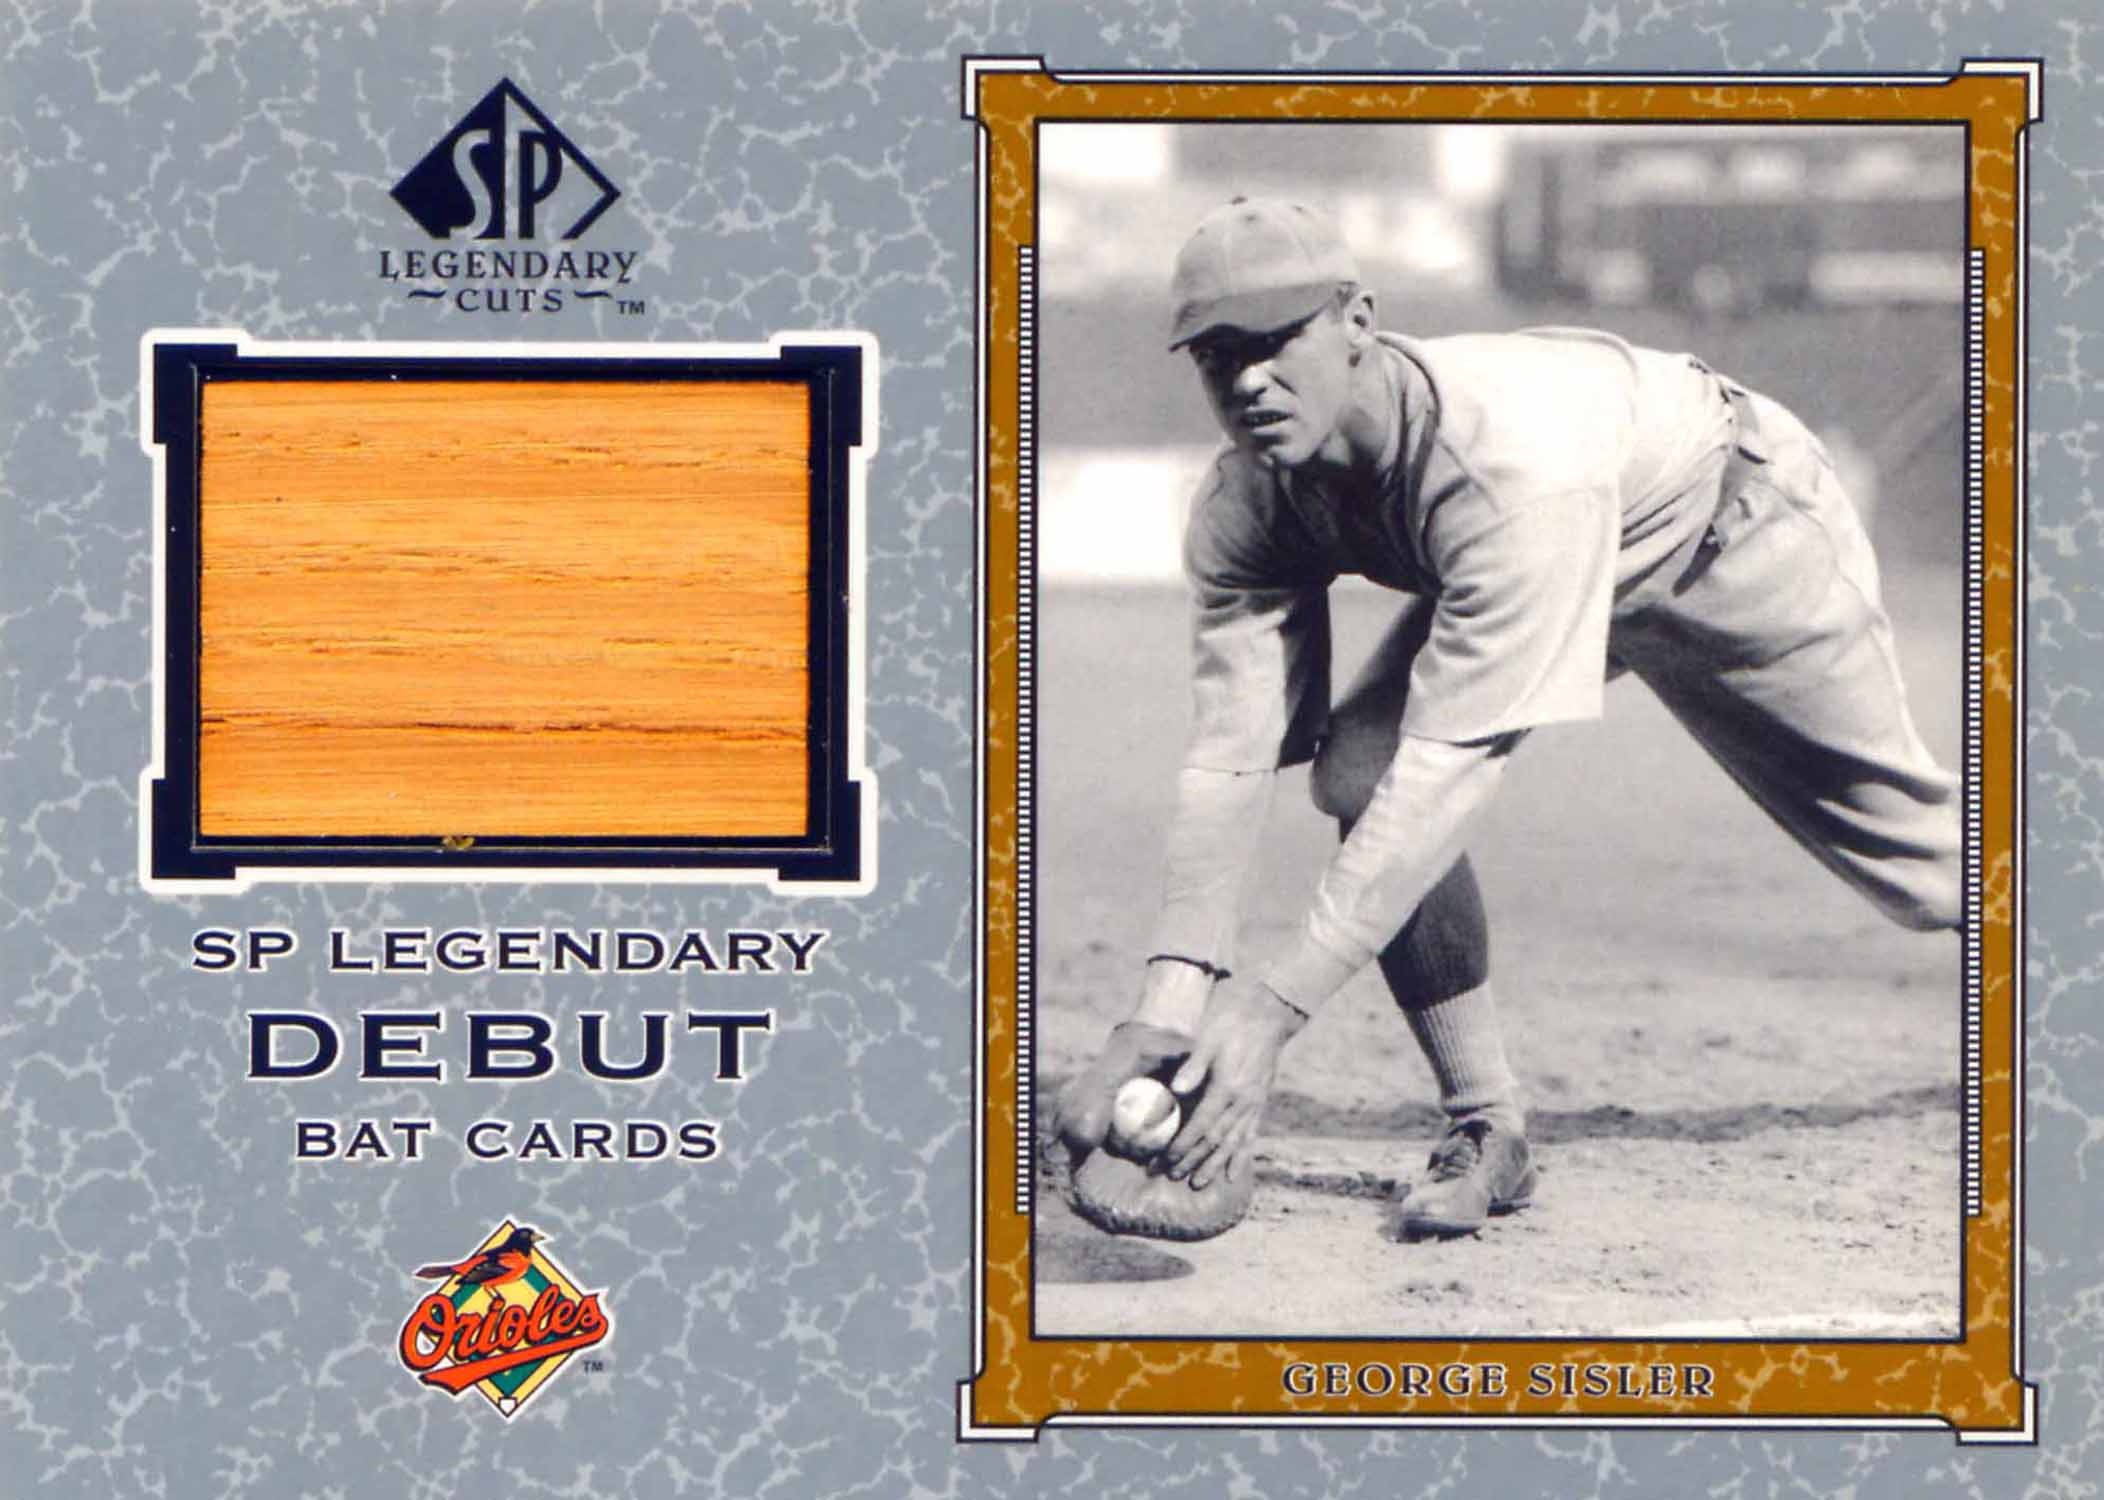 2001 SP Legendary Cuts Debut Game Bat